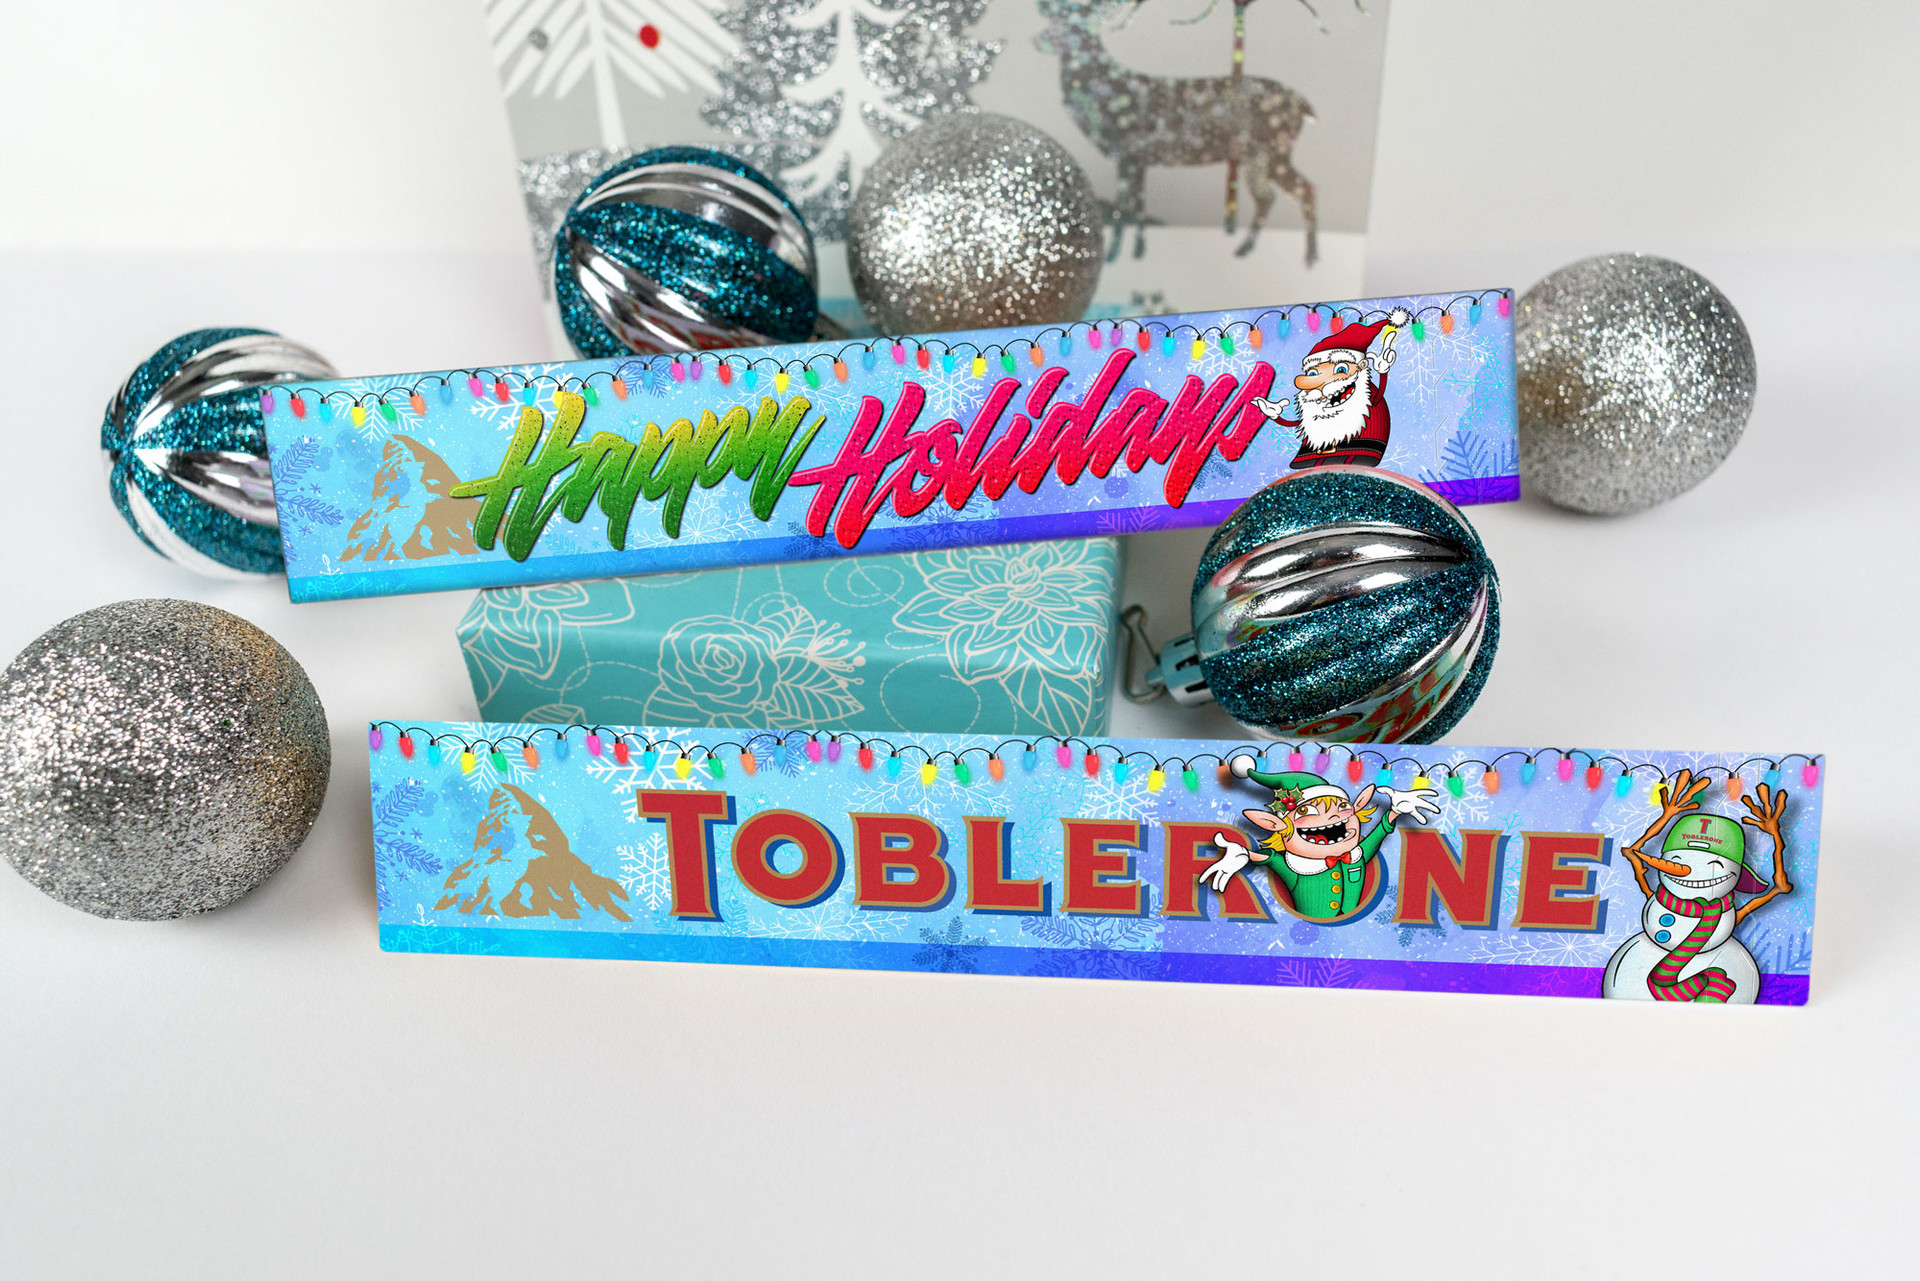 Toblerone Christmas Design